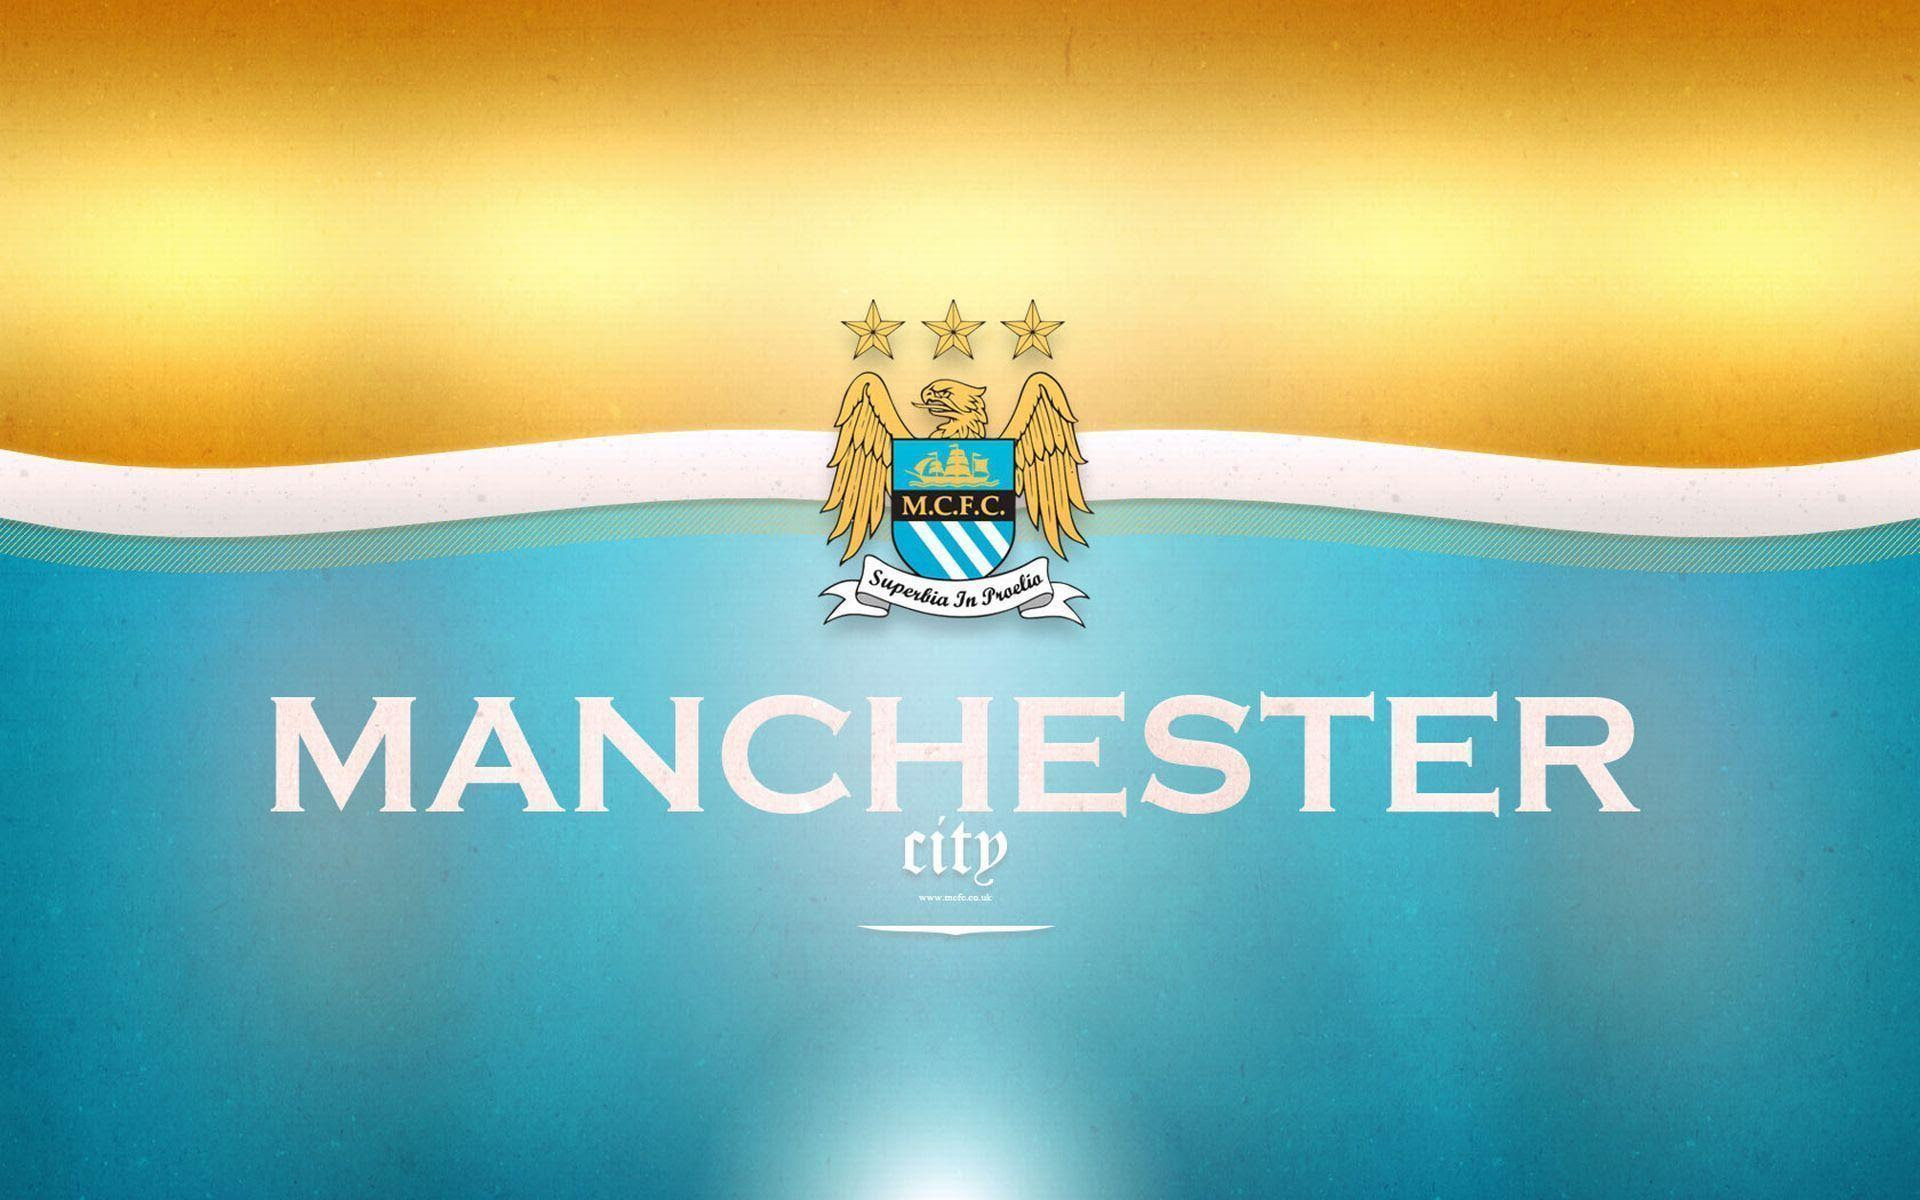 Manchester City Logo Wallpapers - Wallpaper Cave